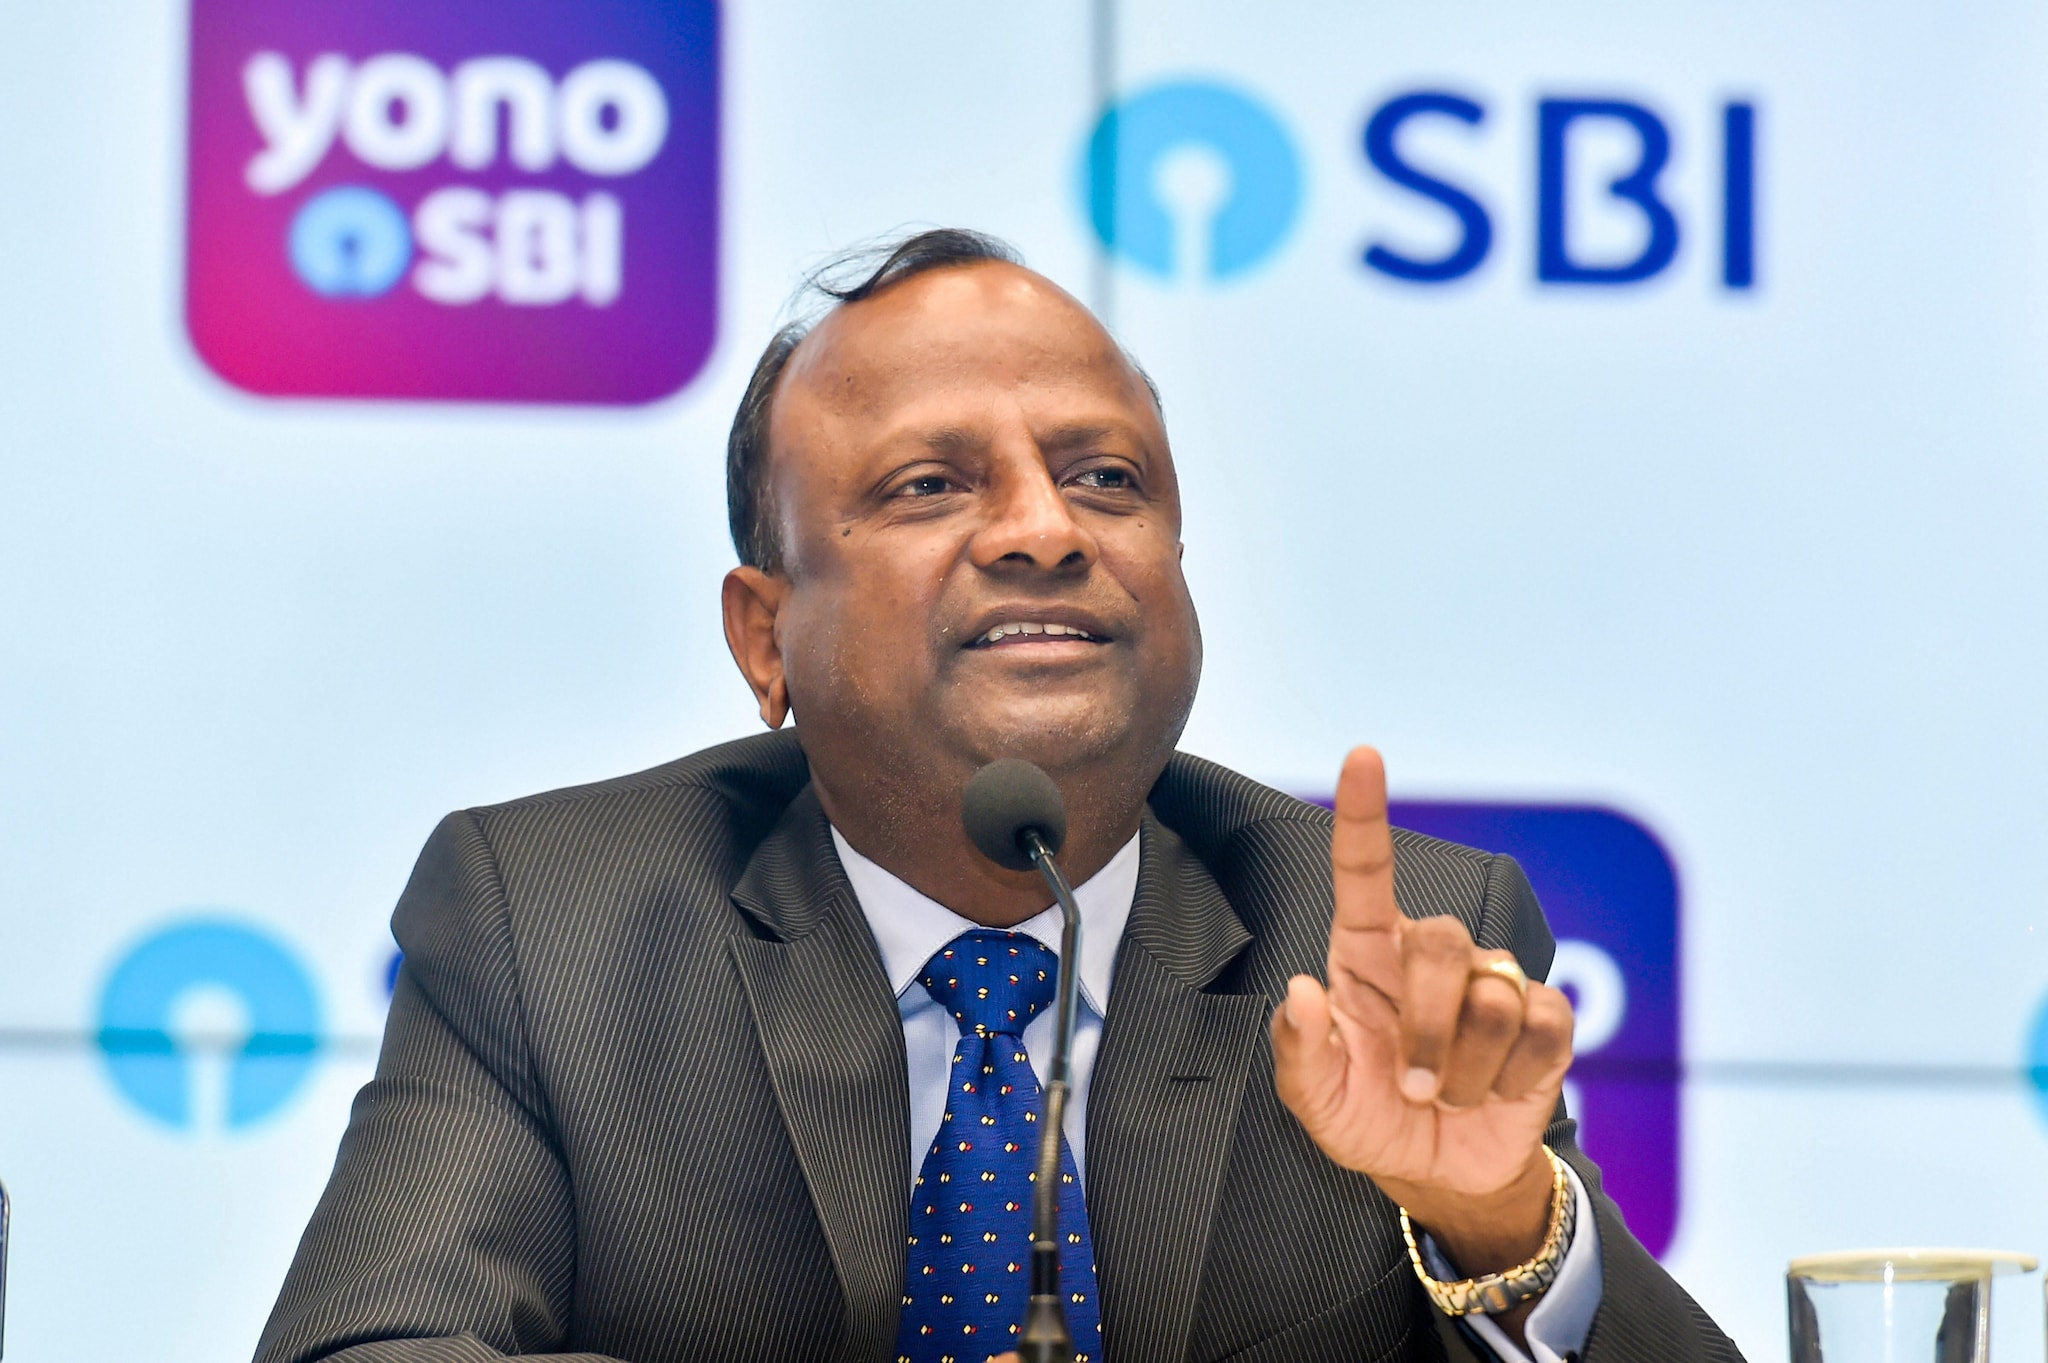 State Bank of India: SBI said it has been closely monitoring its exposures to the NBFC sector for the past many months and is taking appropriate measures to safeguard its interest. The statement comes after mortgage lender Dewan Housing Finance had defaulted on bond repayments on June 4. (Image: PTI)